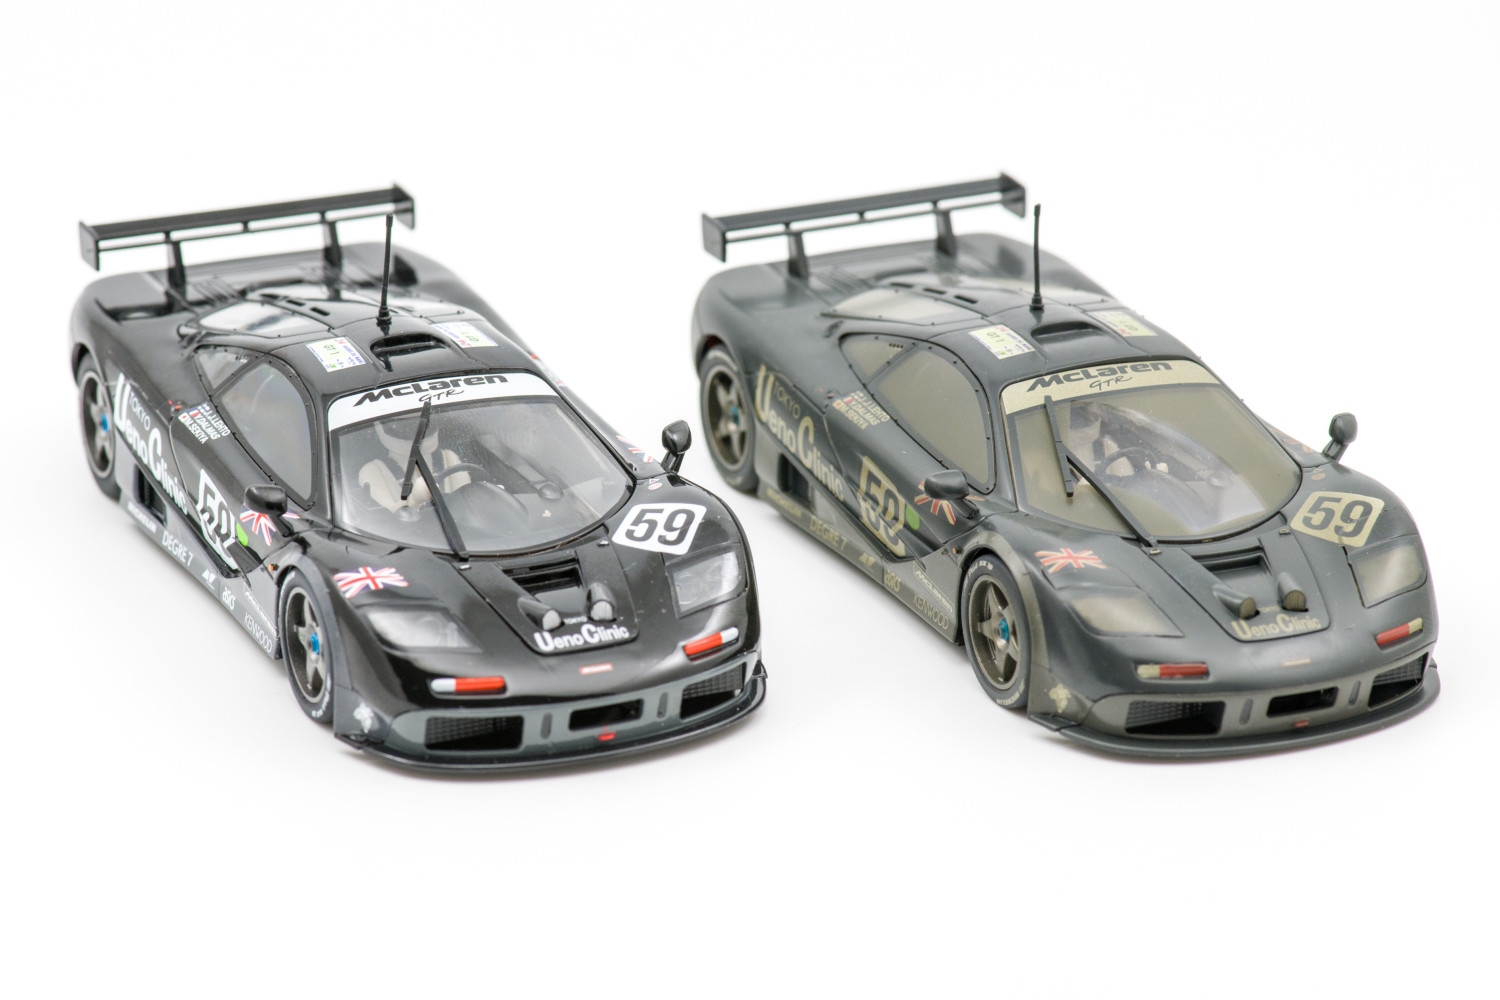 Scalextric Ueno Clinic normaal (C3965A) en Weathered (C4103)